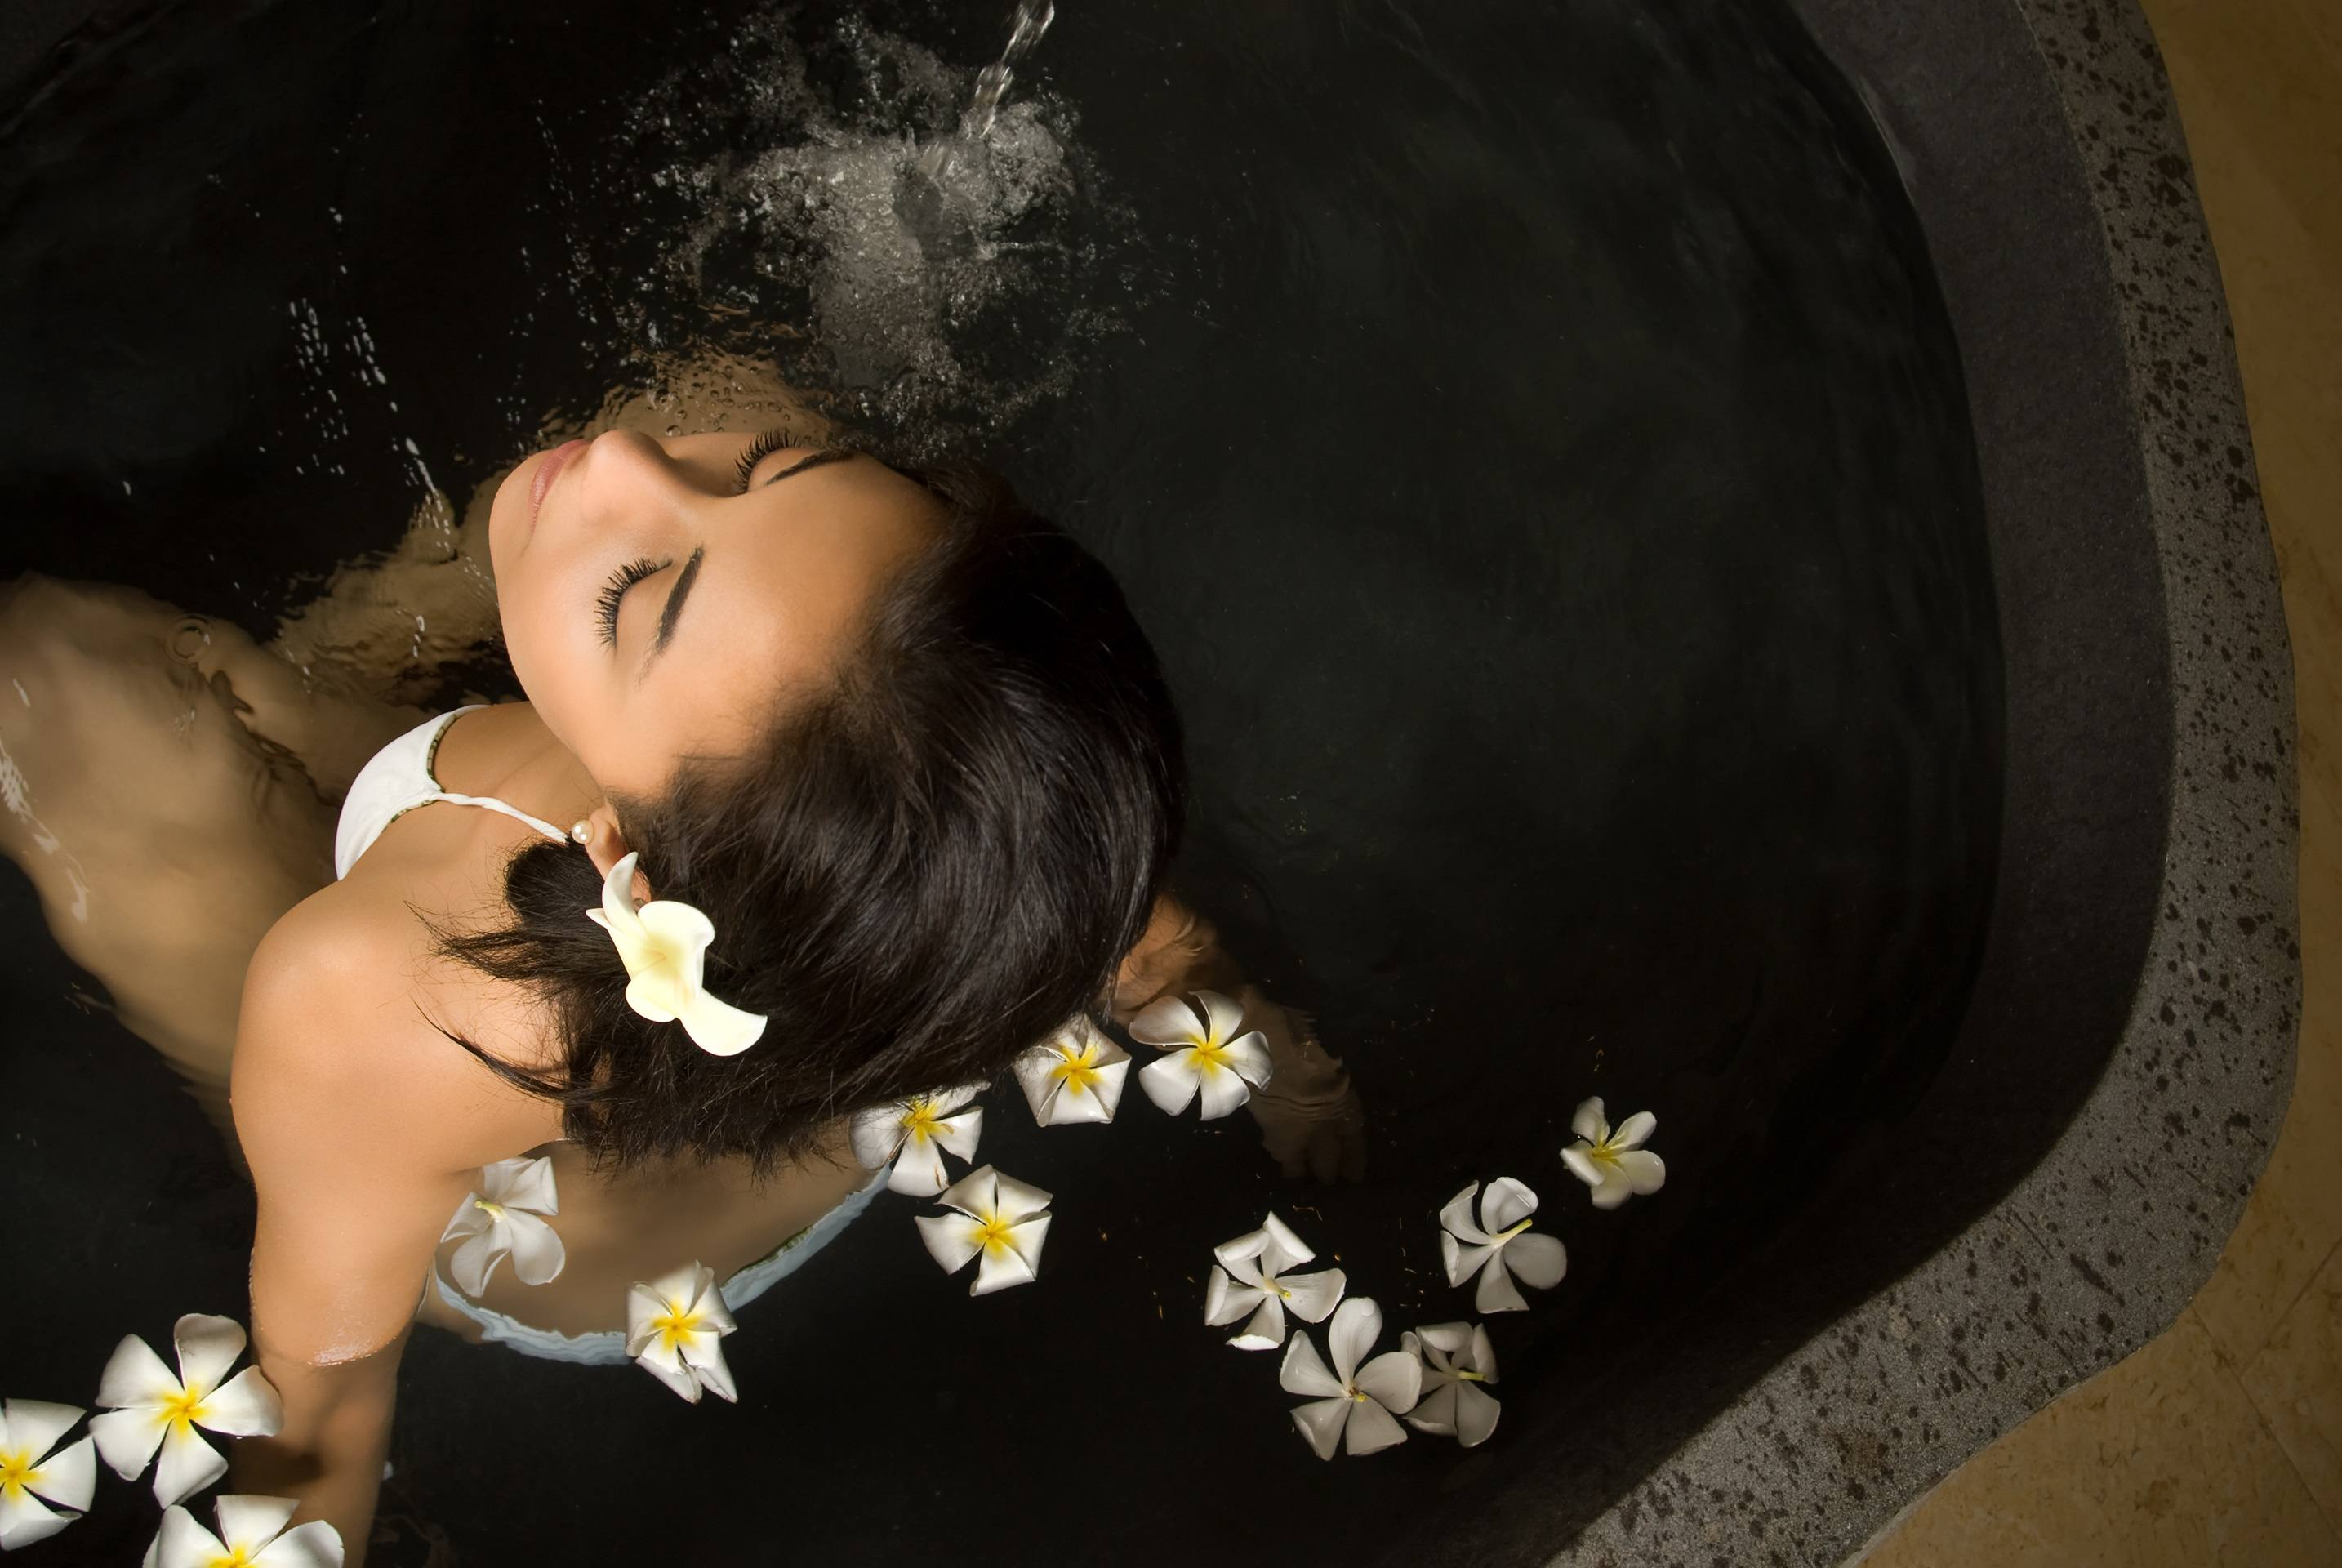 Woman relaxing in spa with floating white plumeria flowers